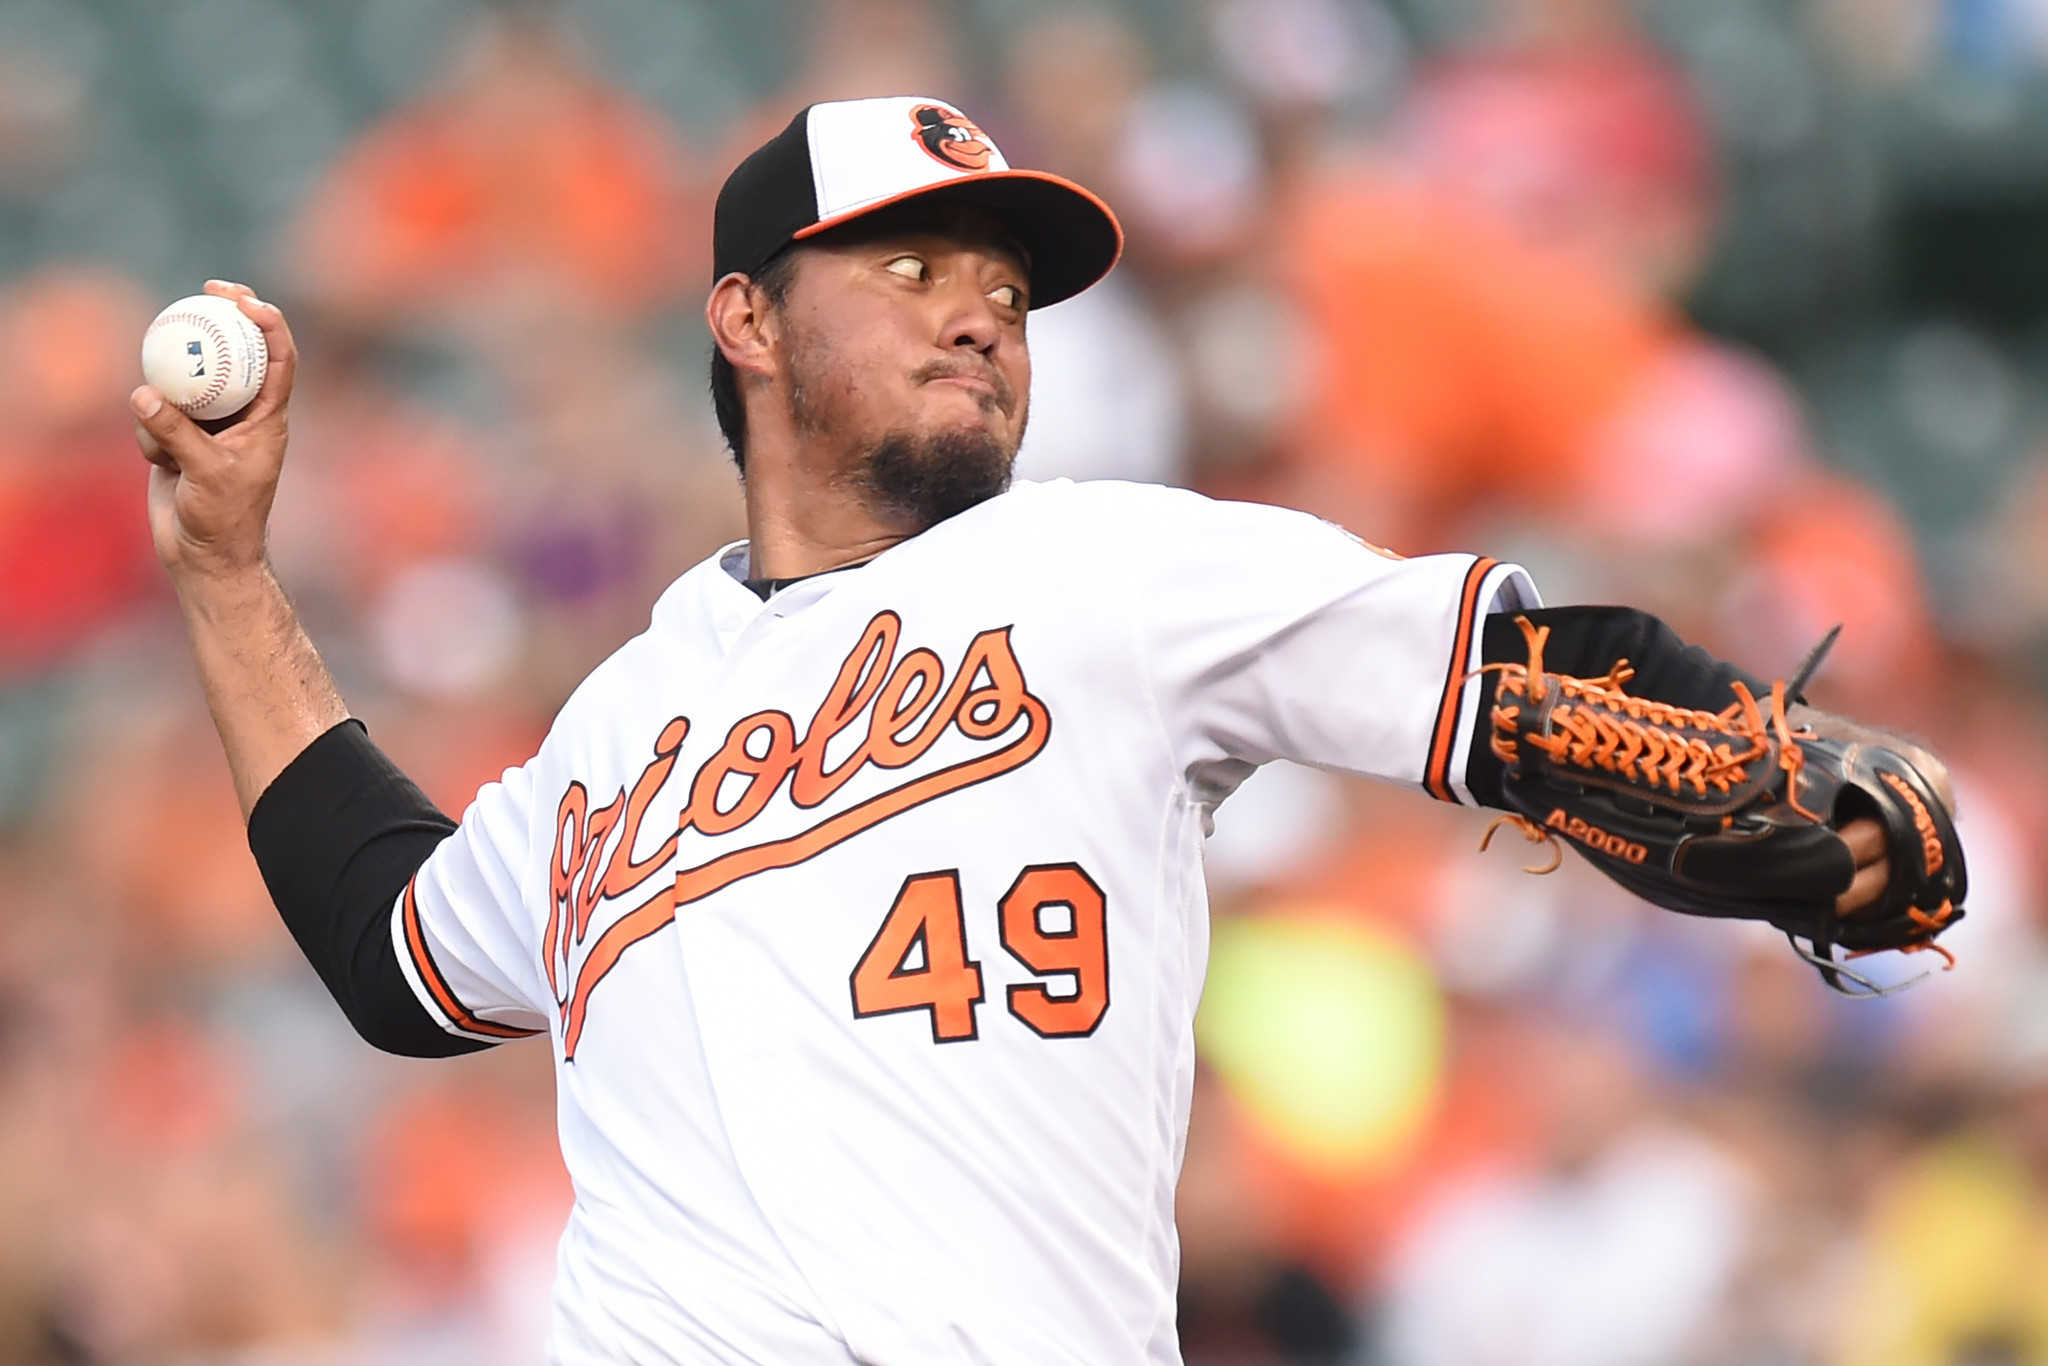 Bal-the-pitching-continues-yovani-gallardo-gives-the-orioles-one-of-his-best-outings-of-the-season-20160725